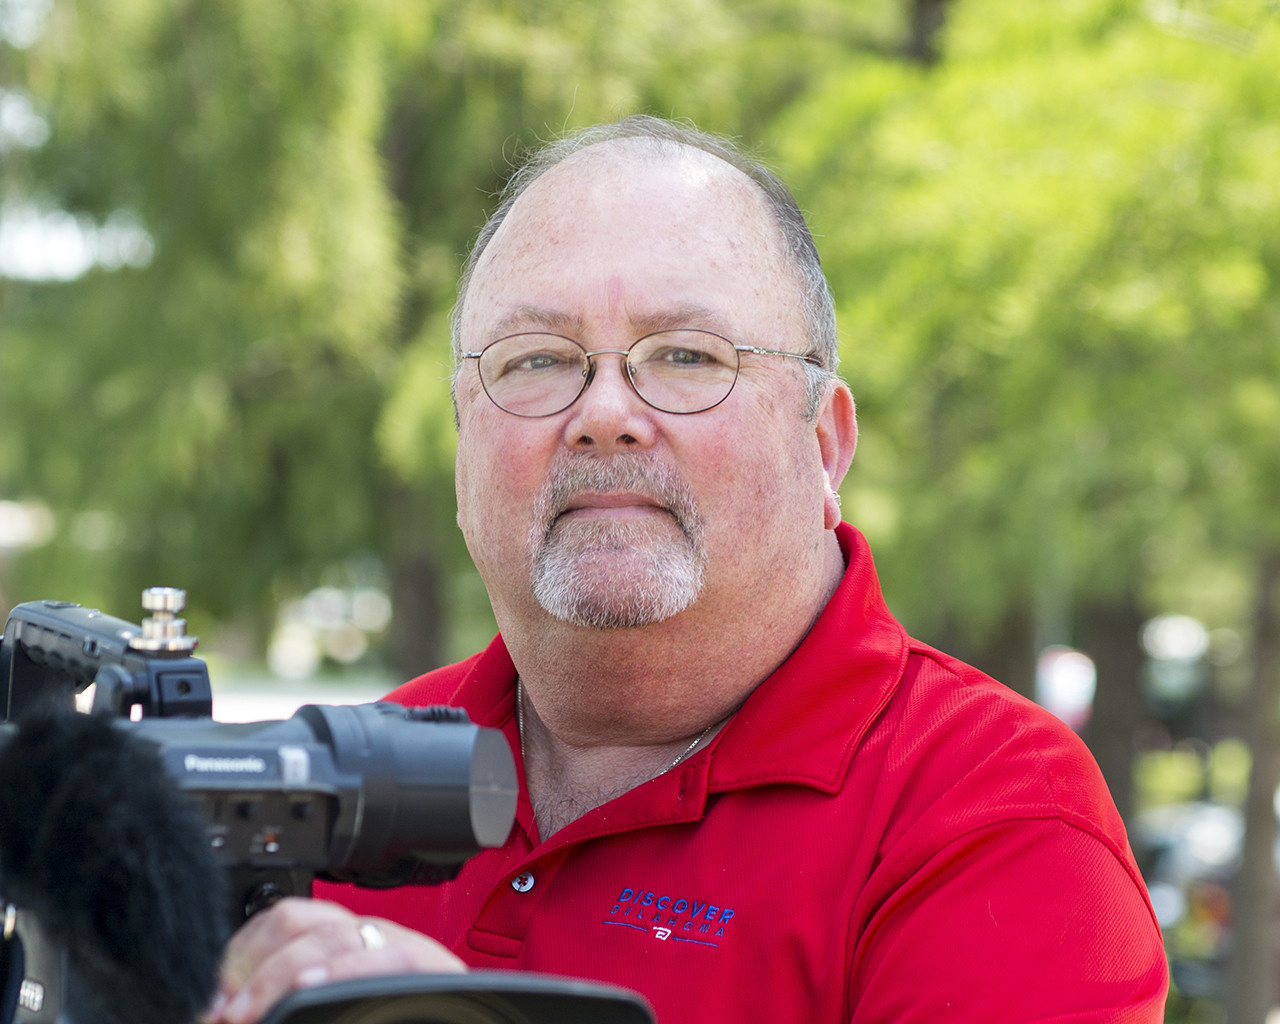 Tommy Evans, Videographer and Editor